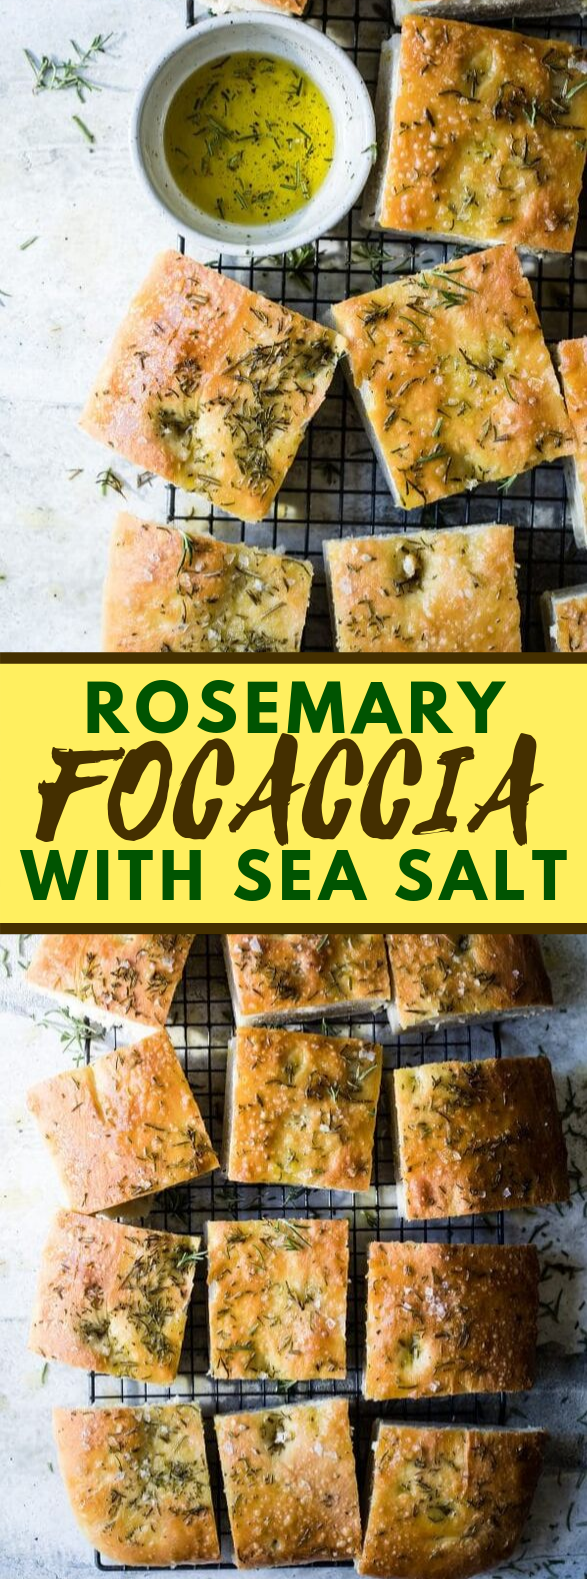 THE BEST ROSEMARY FOCACCIA BREAD #dinner #appetizers